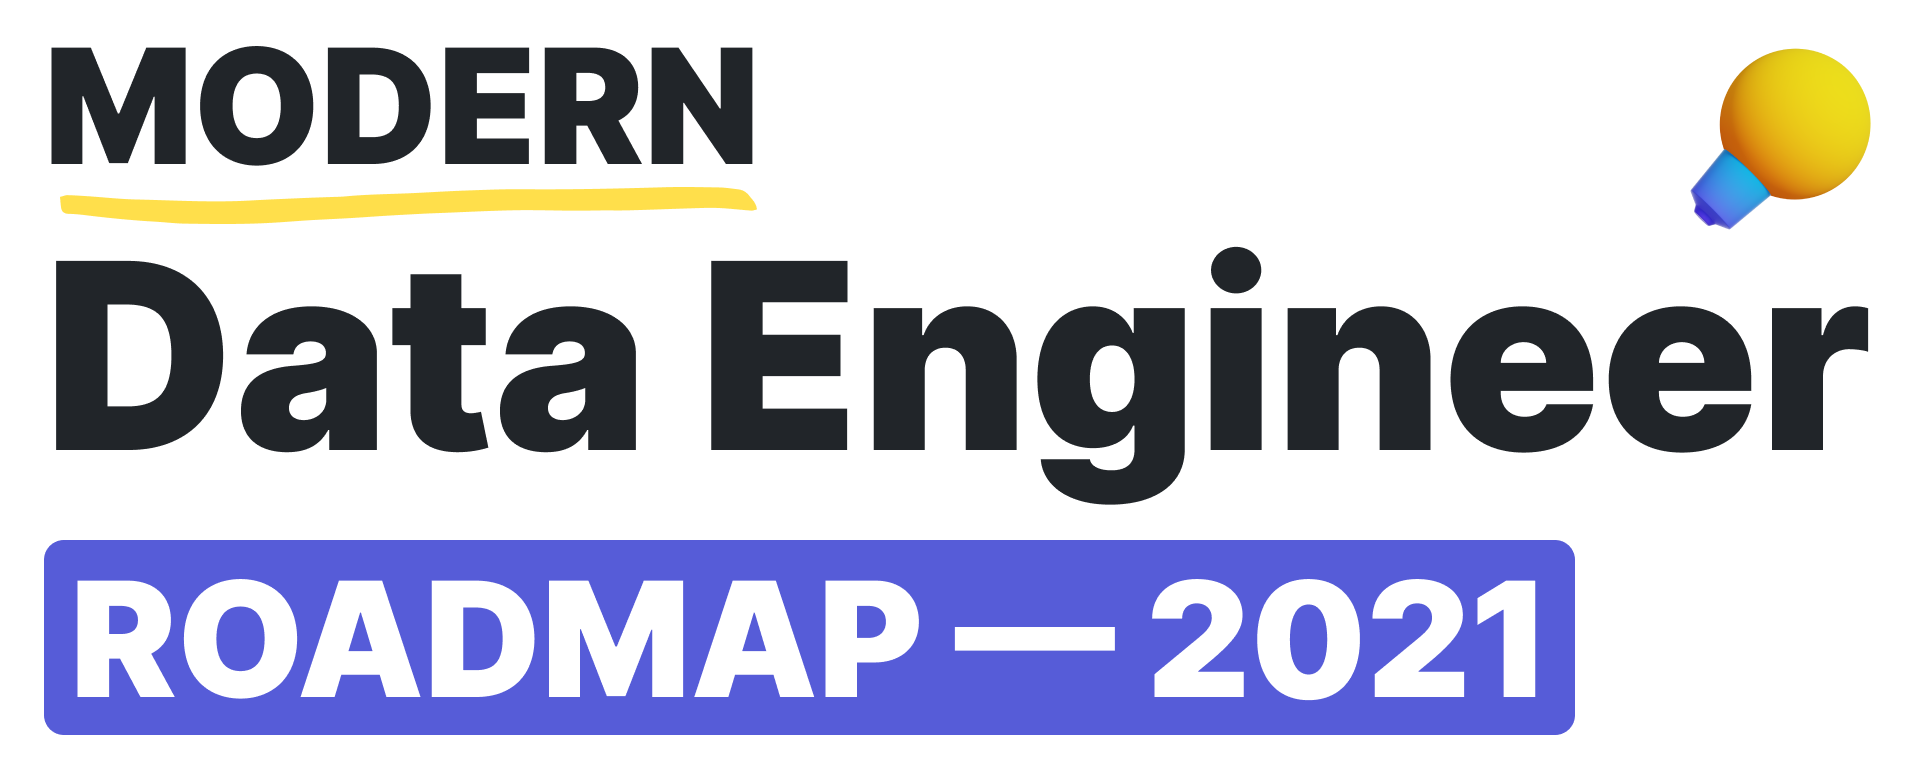 Modern Data Engineer Roadmap 2021